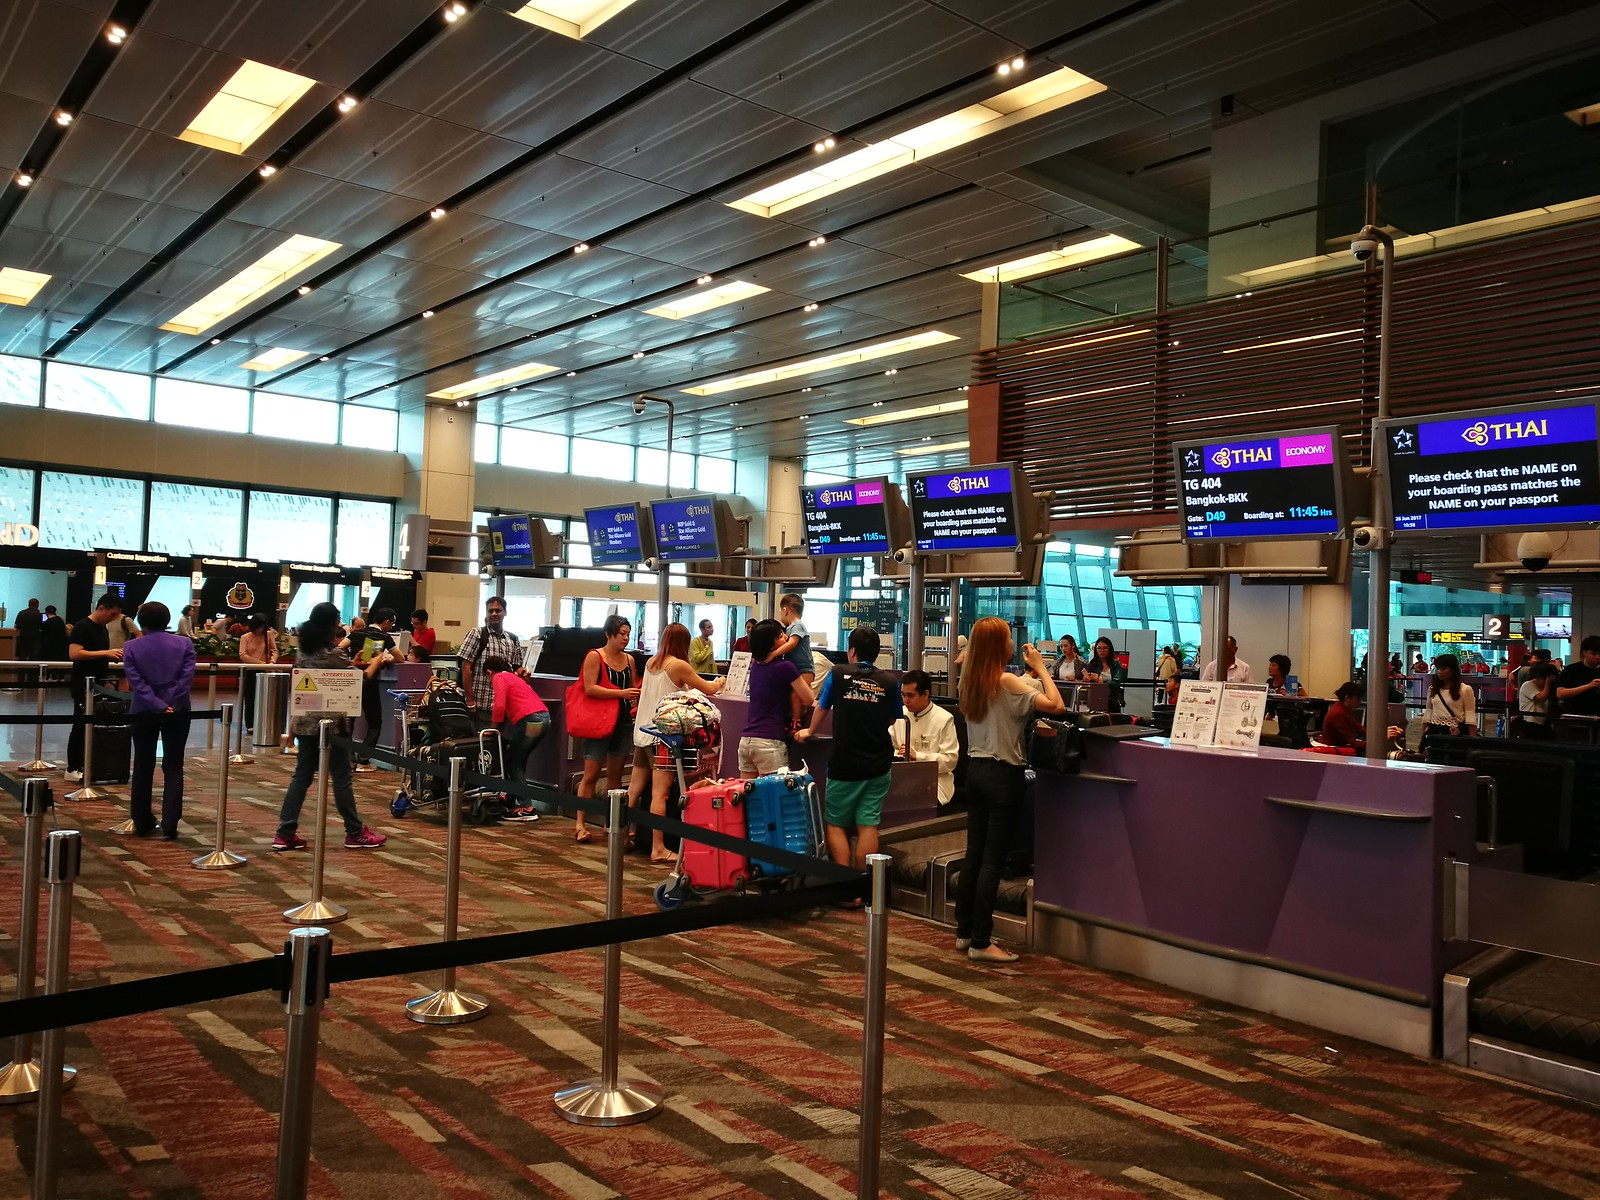 Check-in for Thai Airways